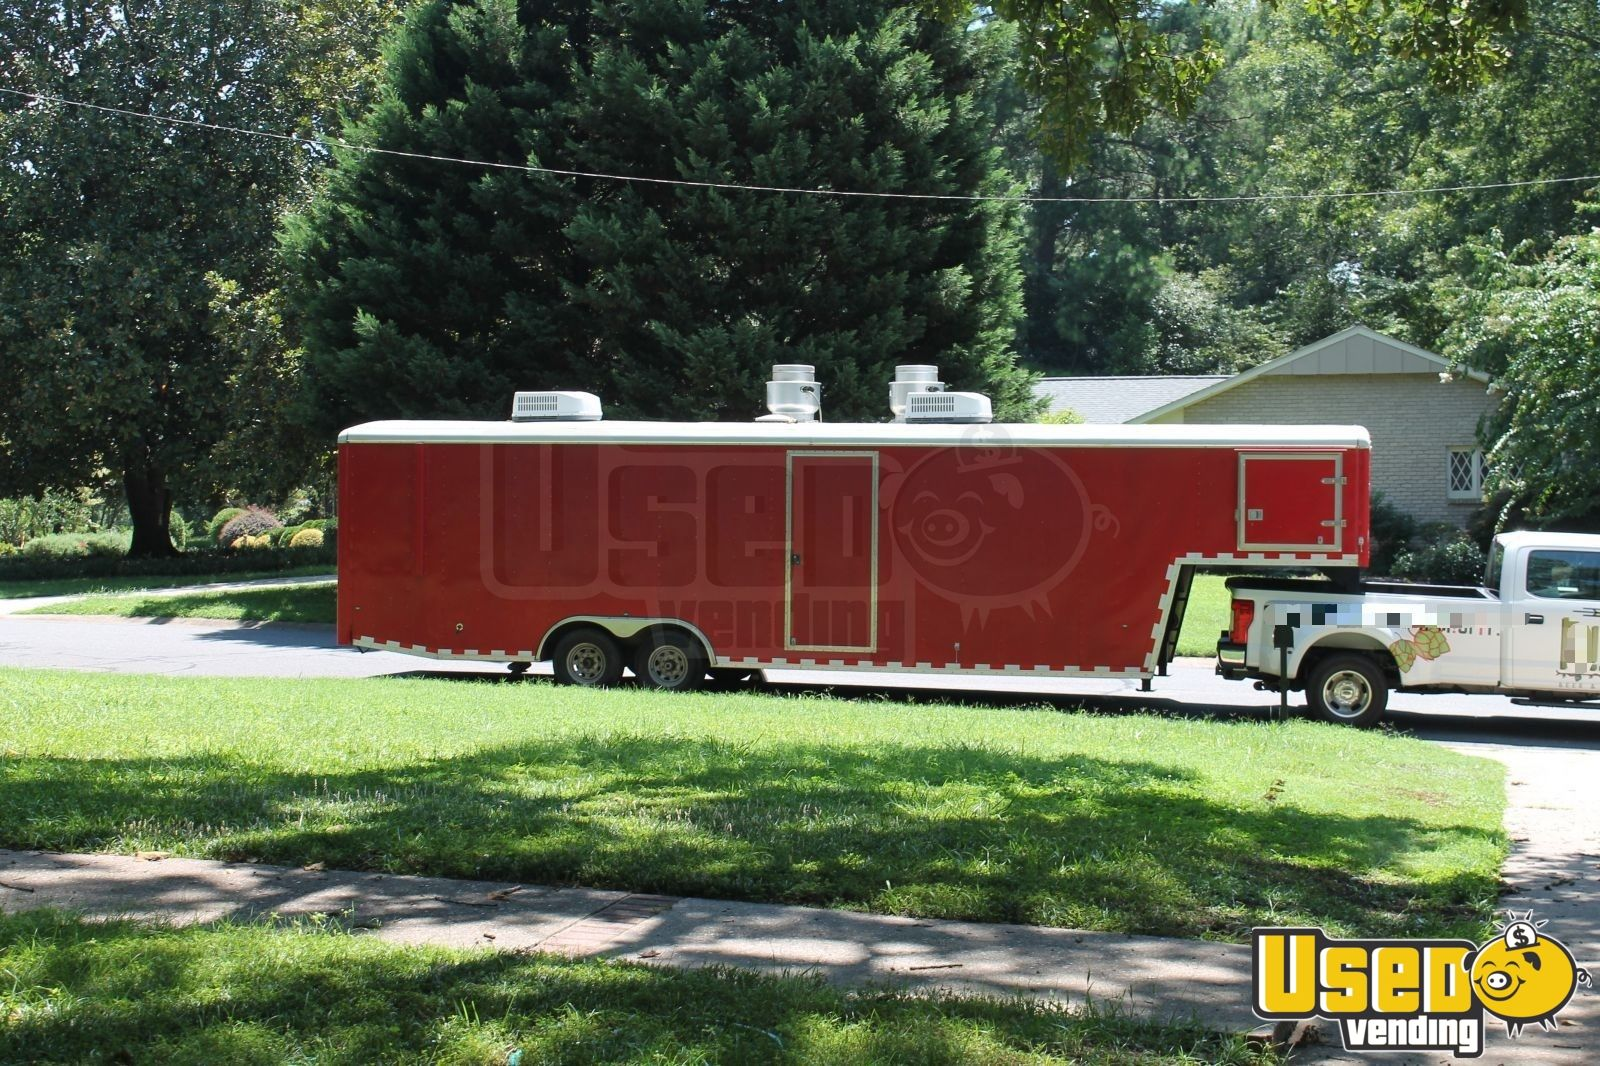 2010 Cvg3625w All-purpose Food Trailer Air Conditioning North Carolina Diesel Engine for Sale - 2